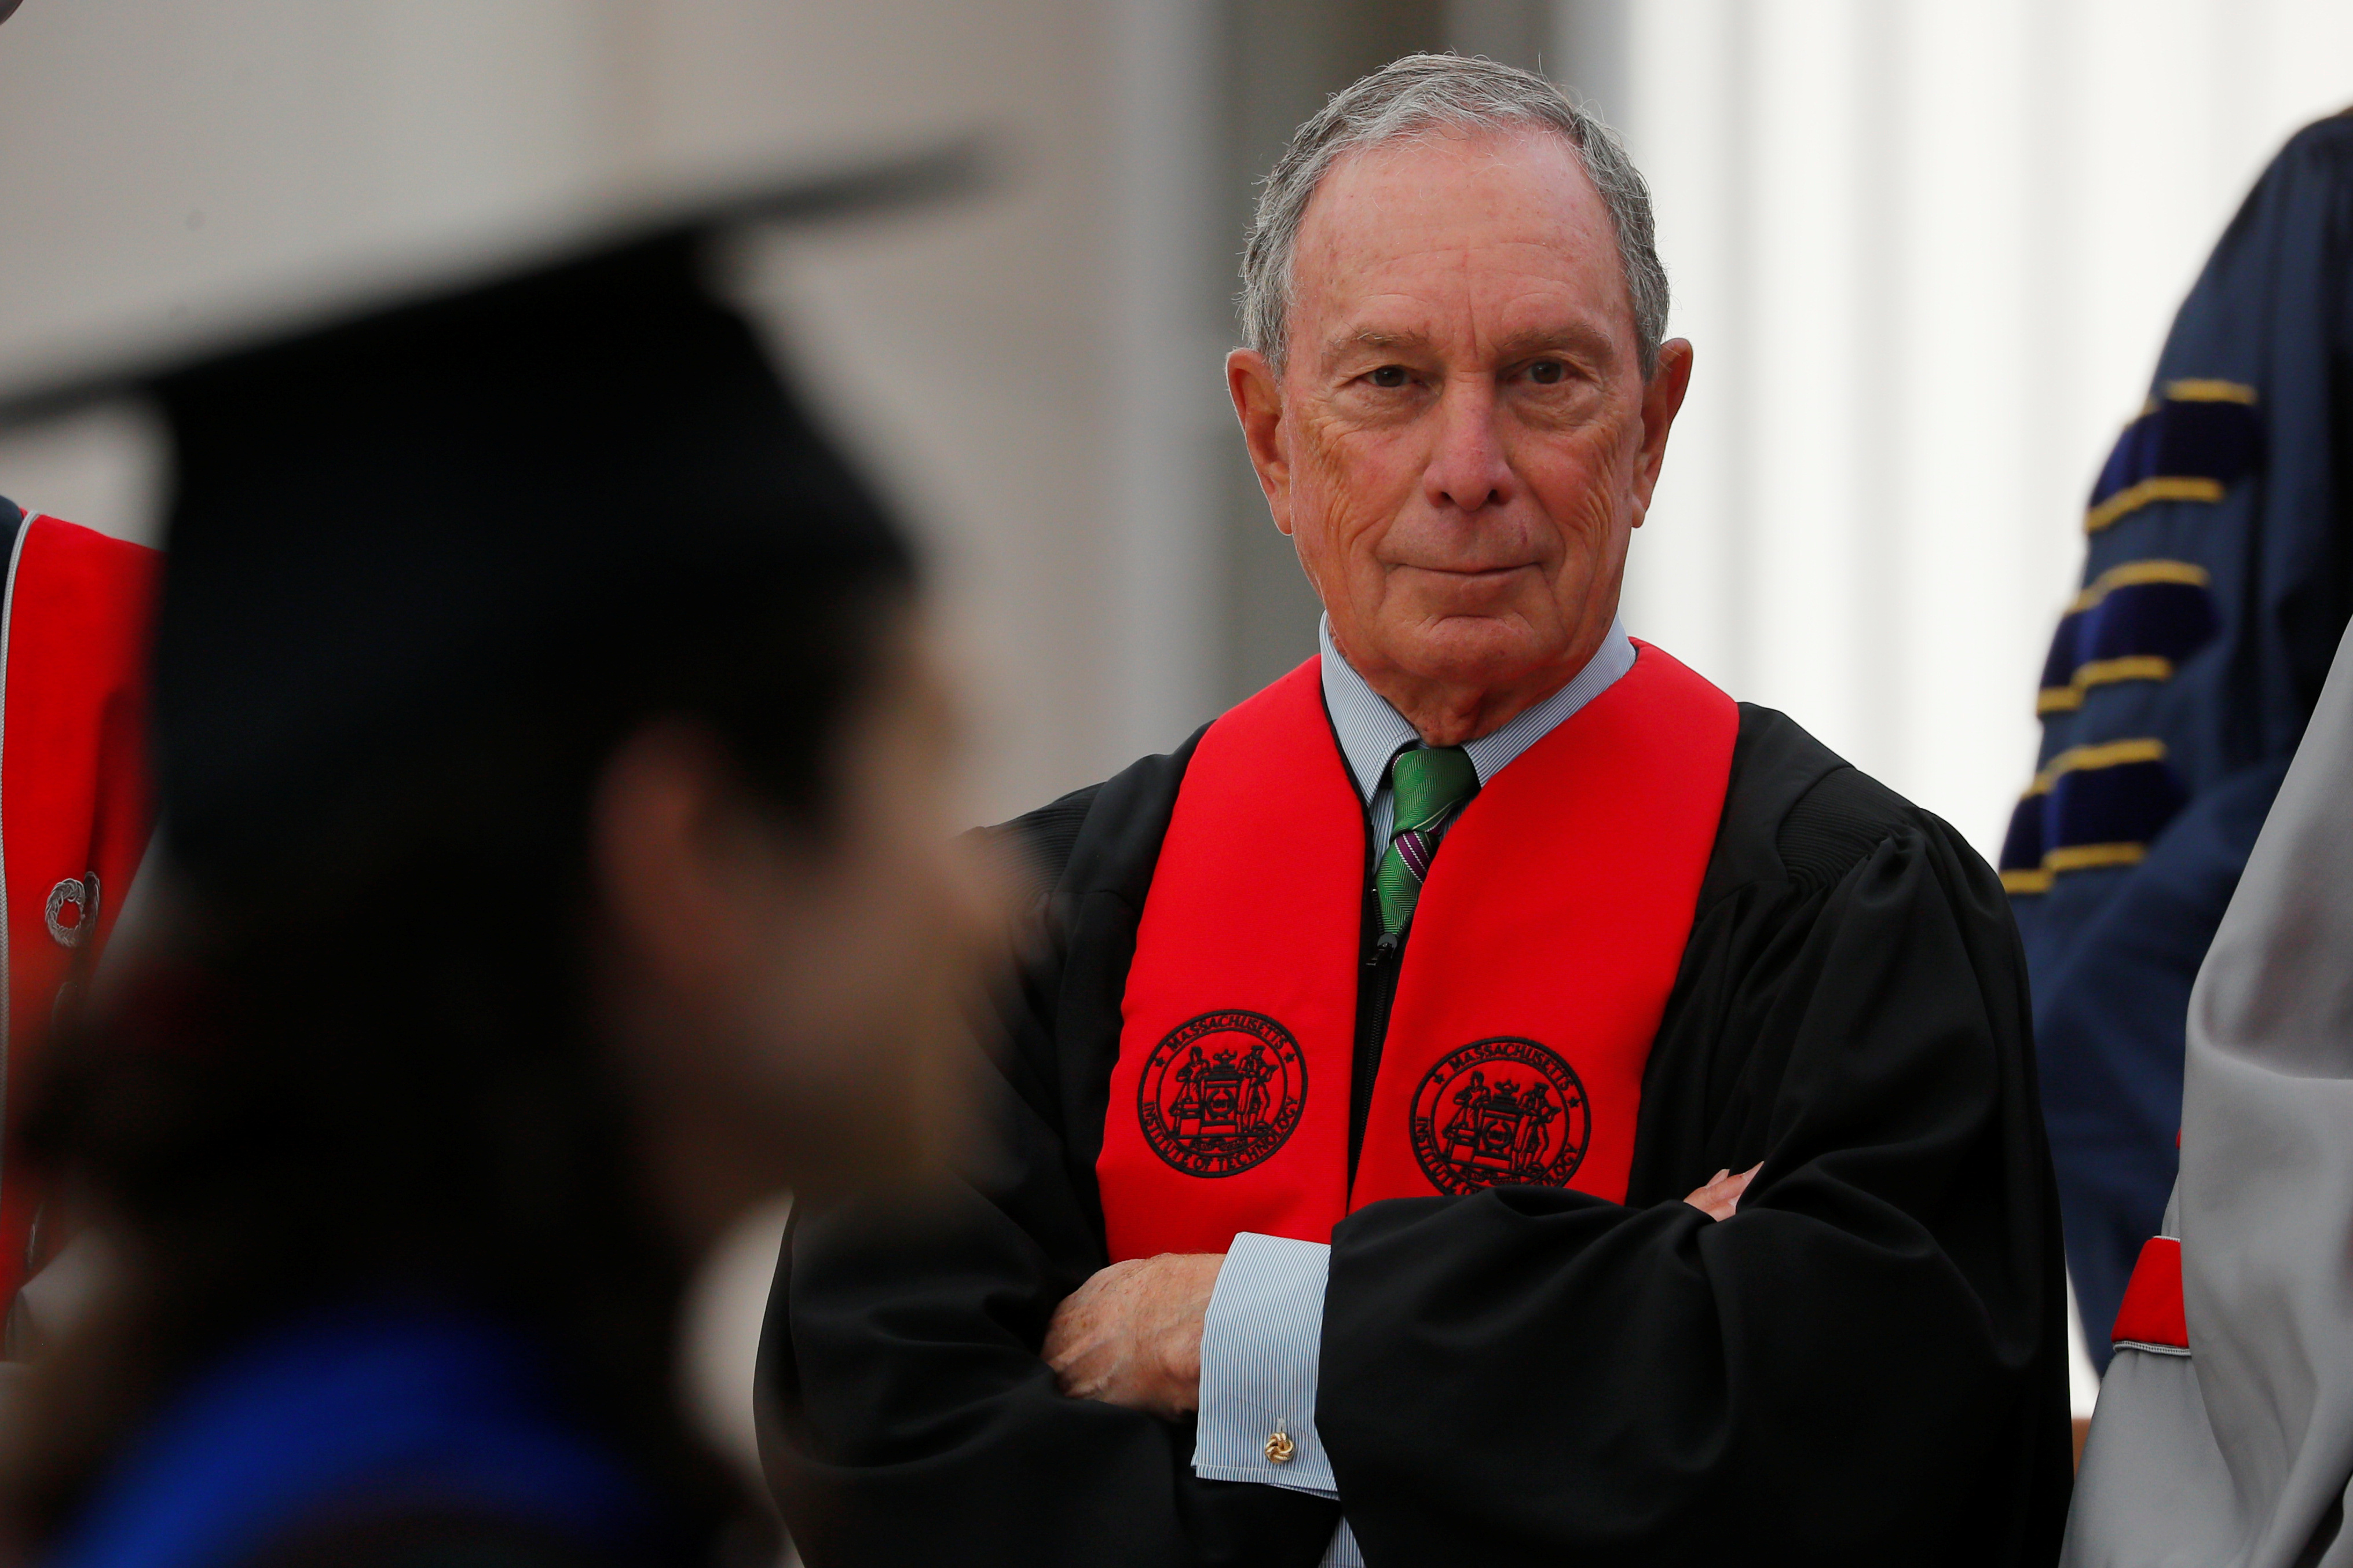 Commencement speaker Michael Bloomberg watches as graduating students arrive for Commencement Exercises at MIT in Cambridge